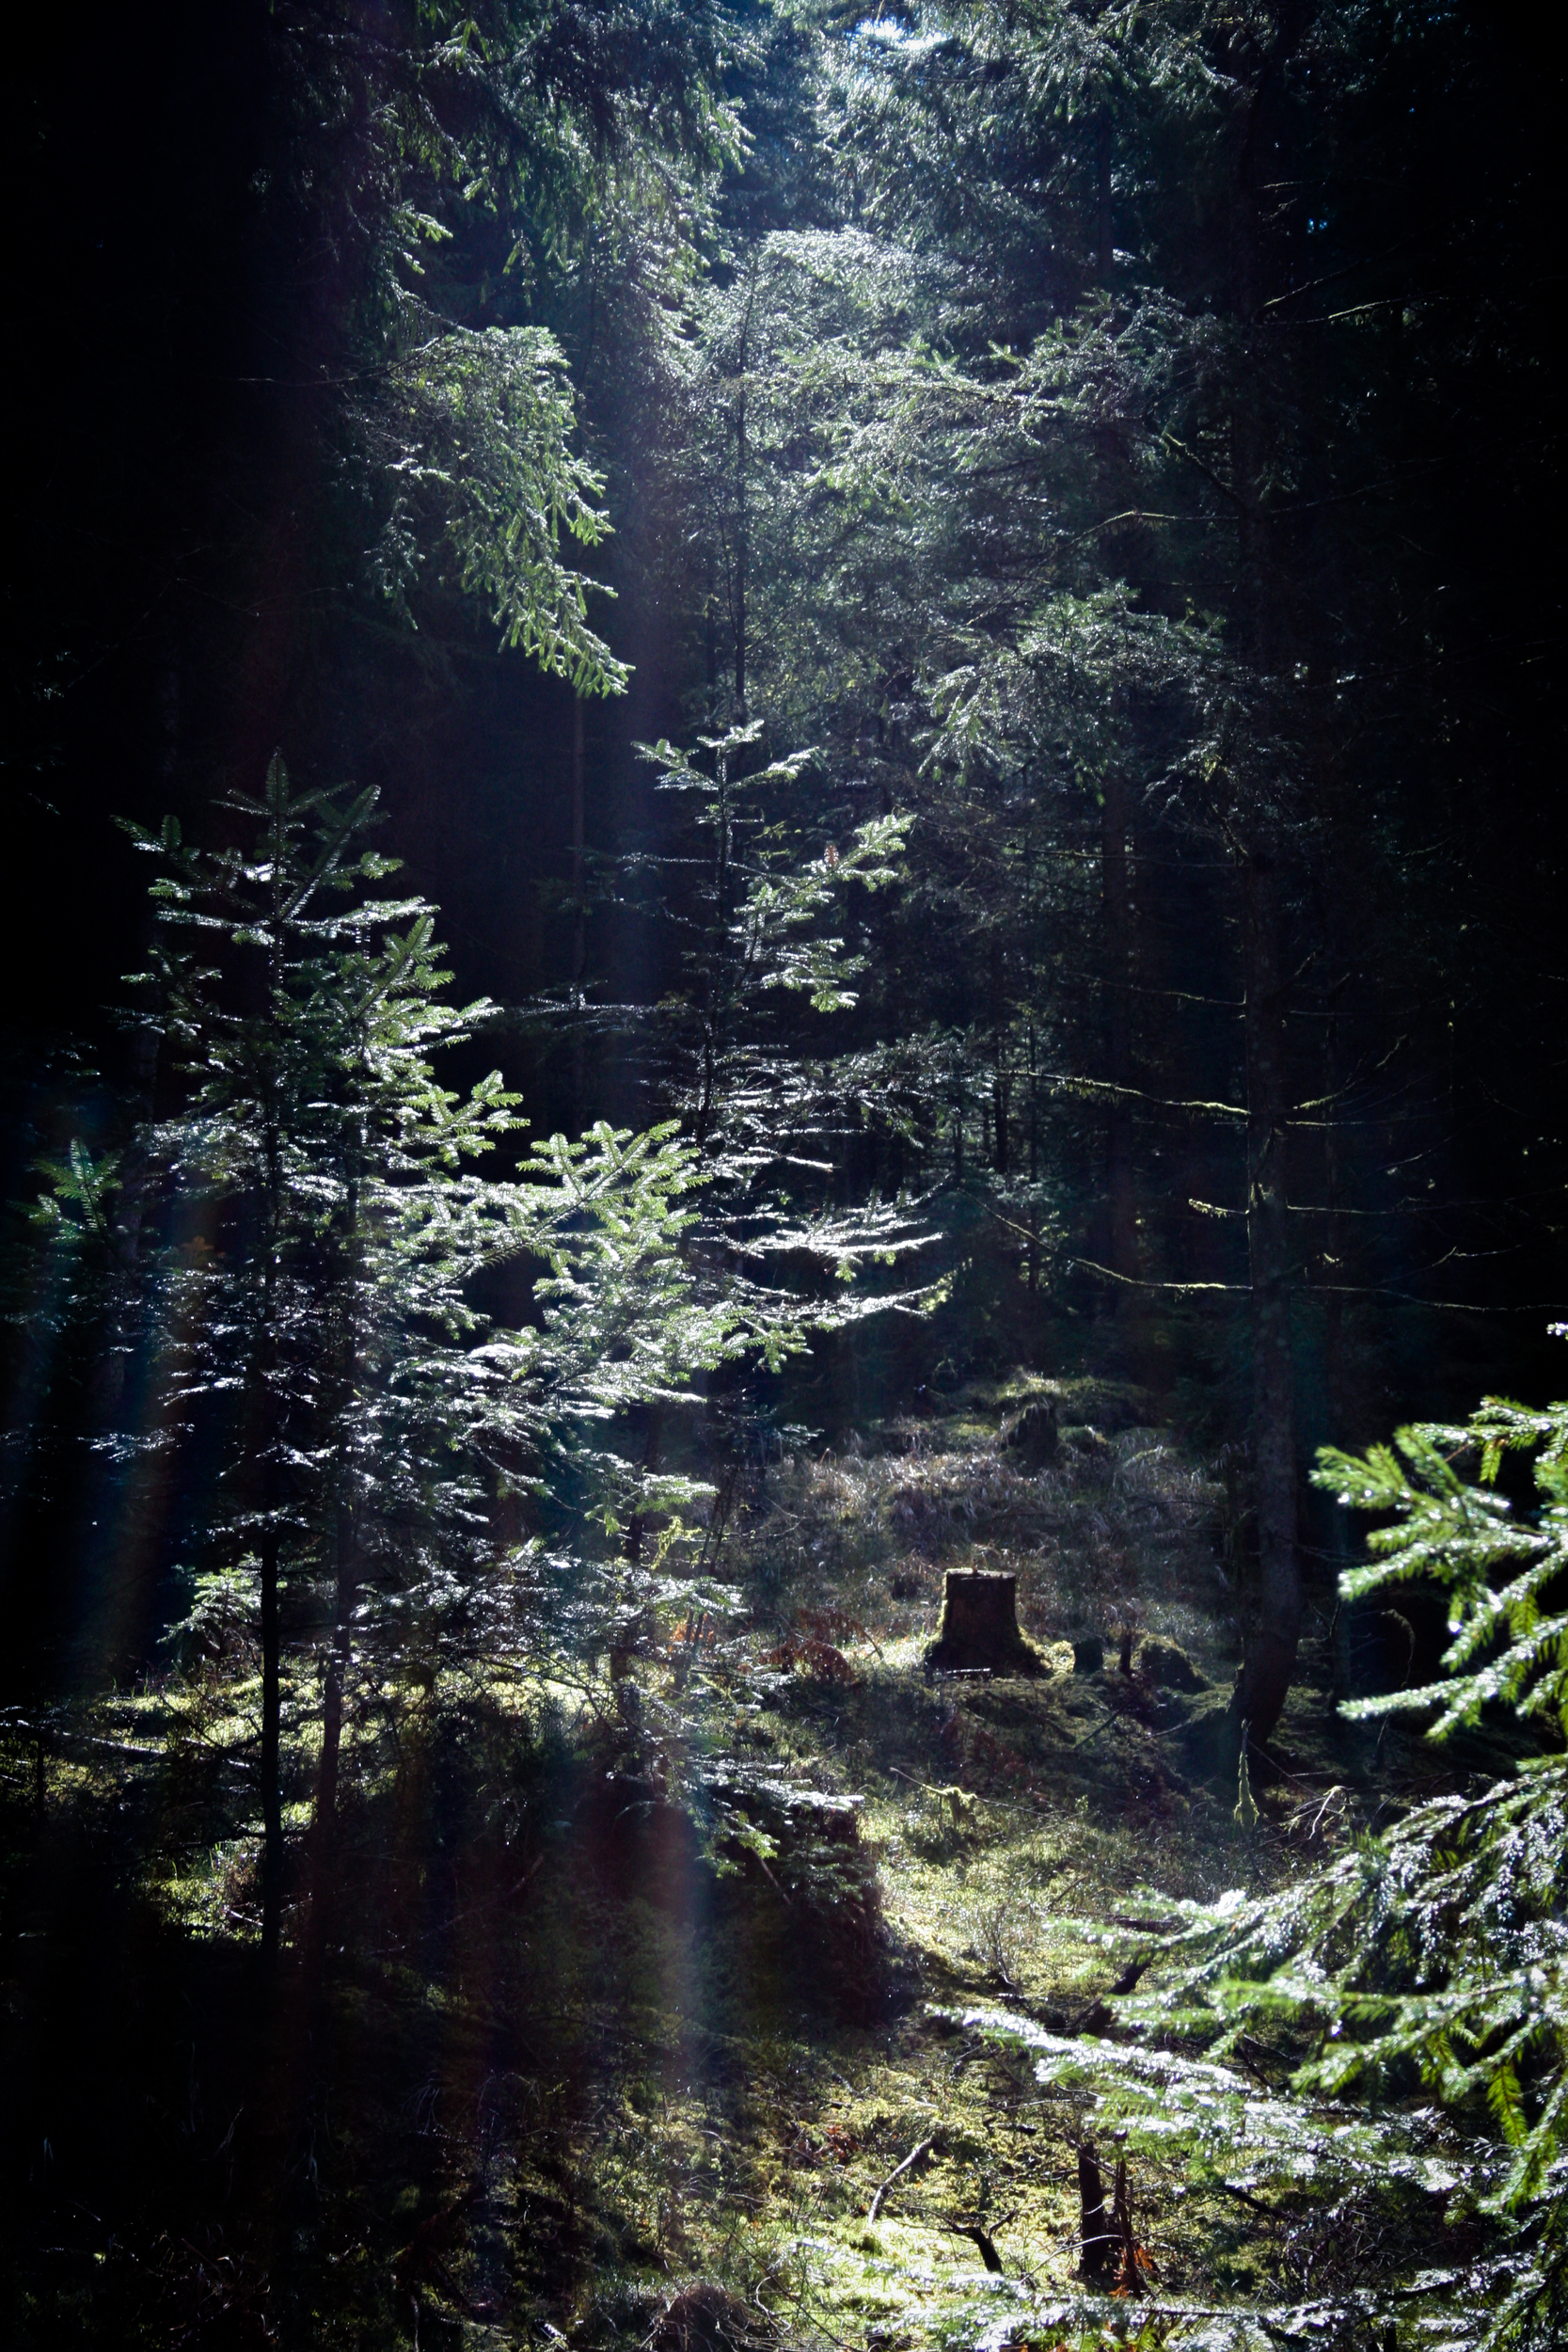 ahorn forest 2008